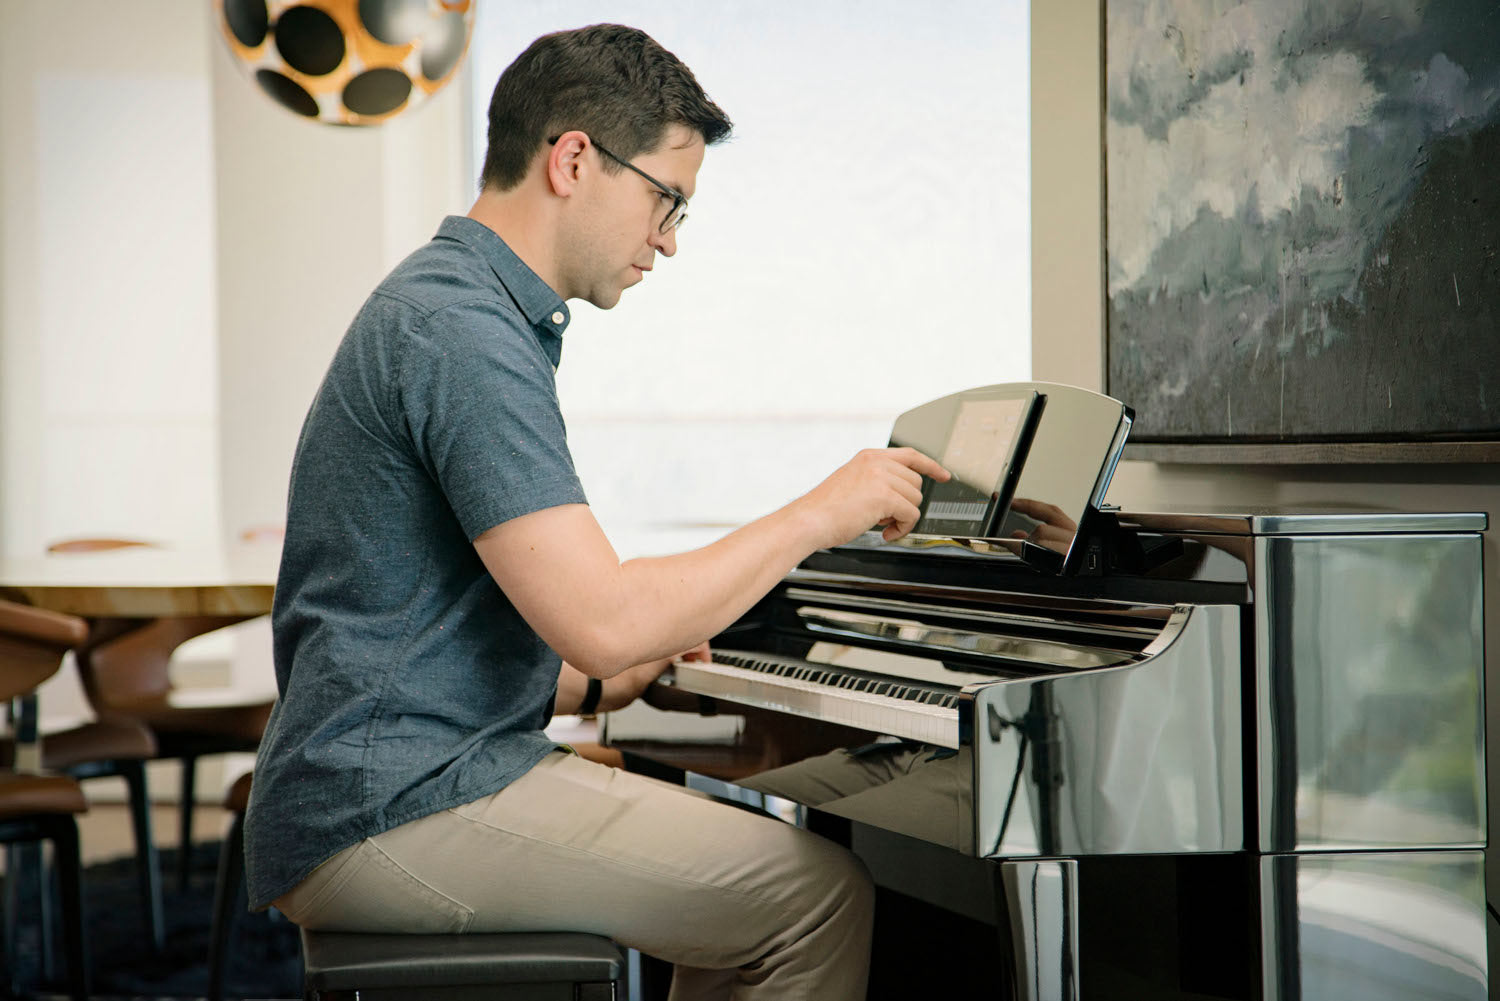 A man approximately 40 years old is smiling broadly while playing from sheet music on a Yamaha upright piano in a living room setting.